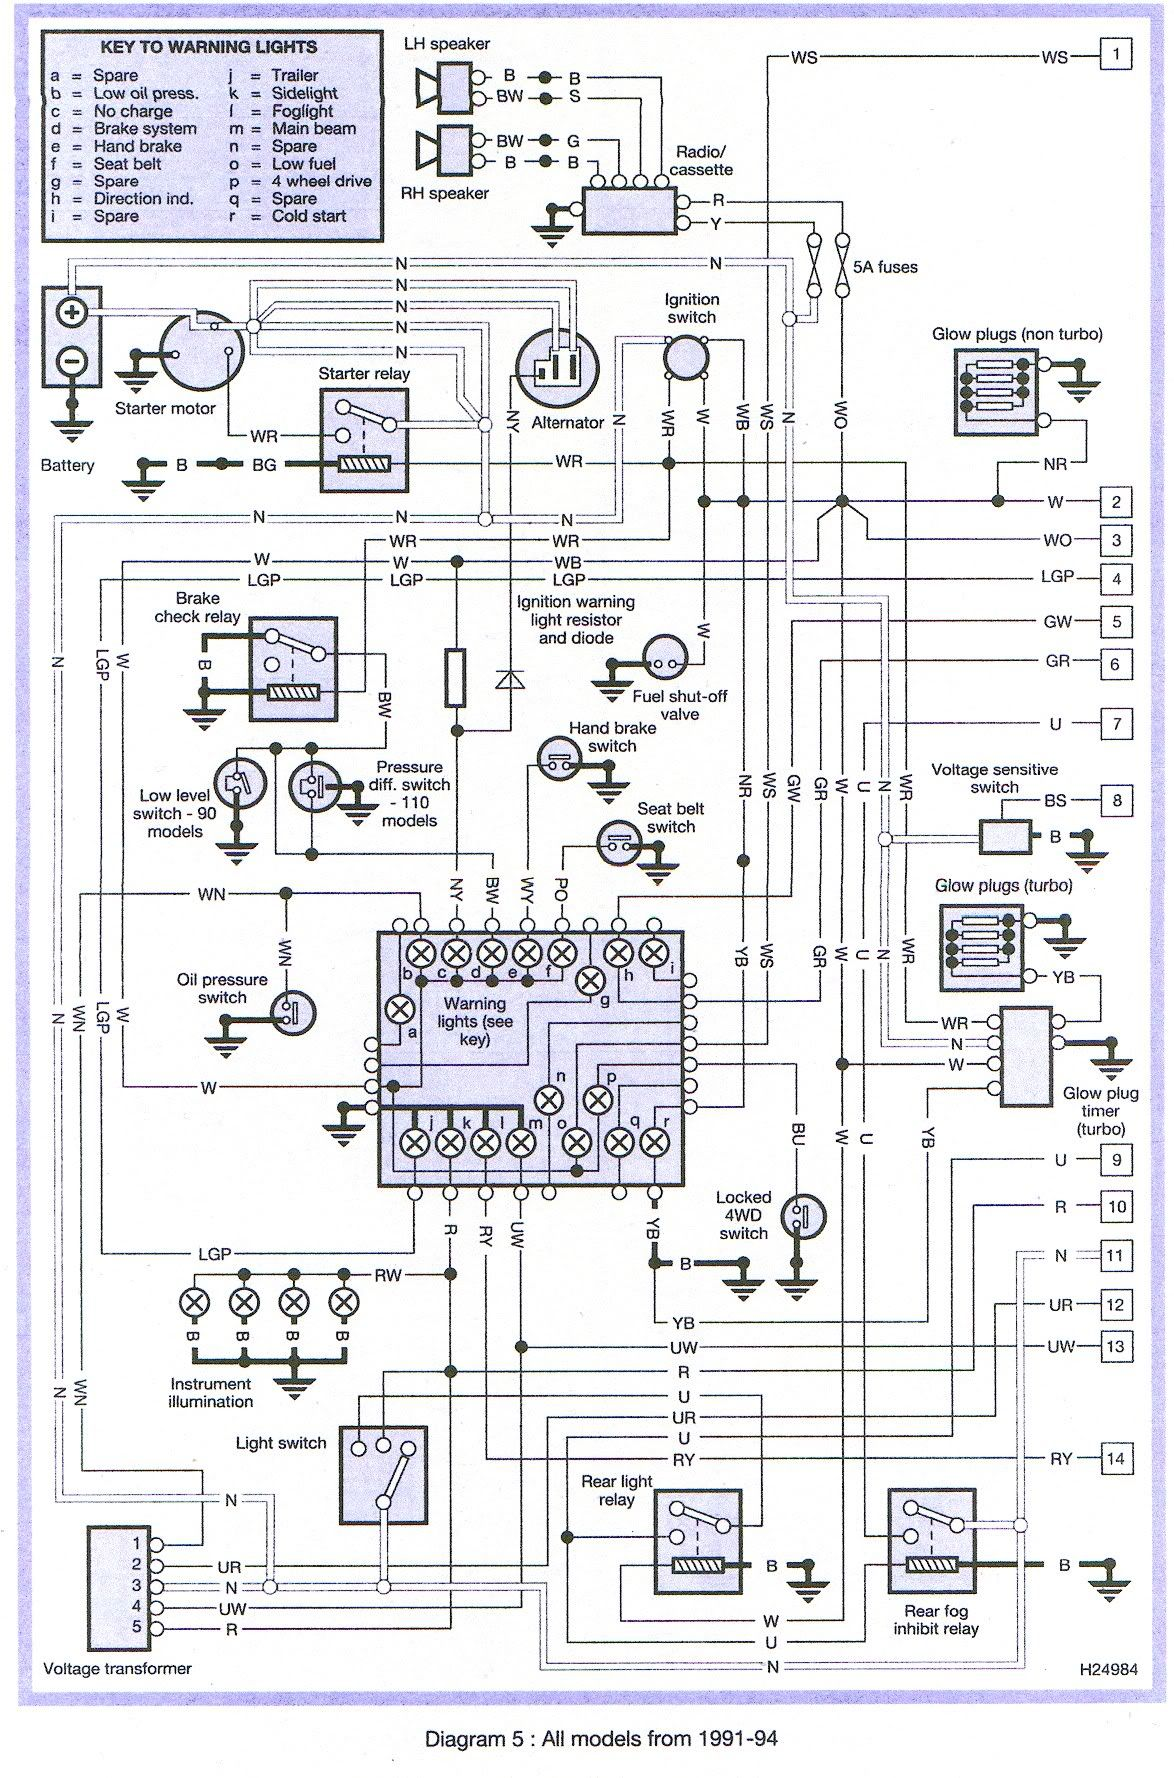 07629544bfff38ad2881b2c21312c6e6 land rover discovery wiring diagram manual repair with engine 1997 land rover discovery fuse box diagram at edmiracle.co